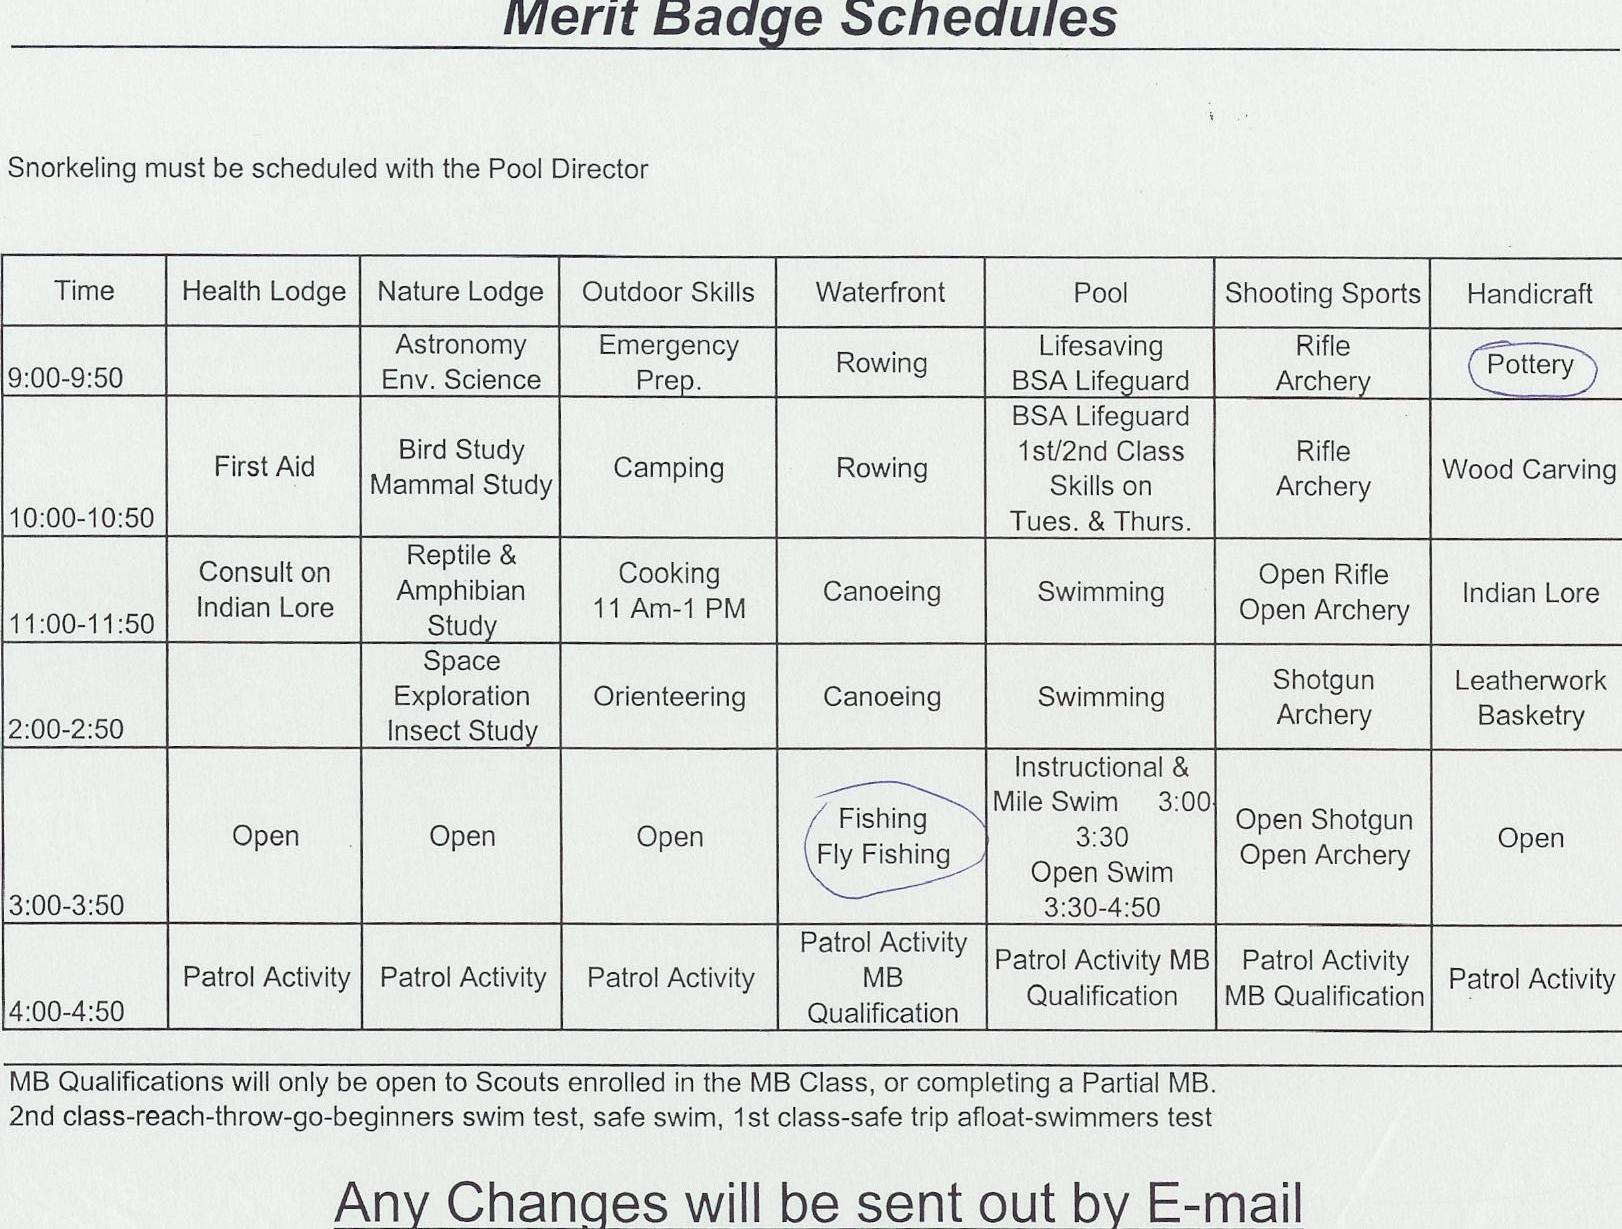 Seven Mountains Summer Camp 2004 Merit Badge Schedule